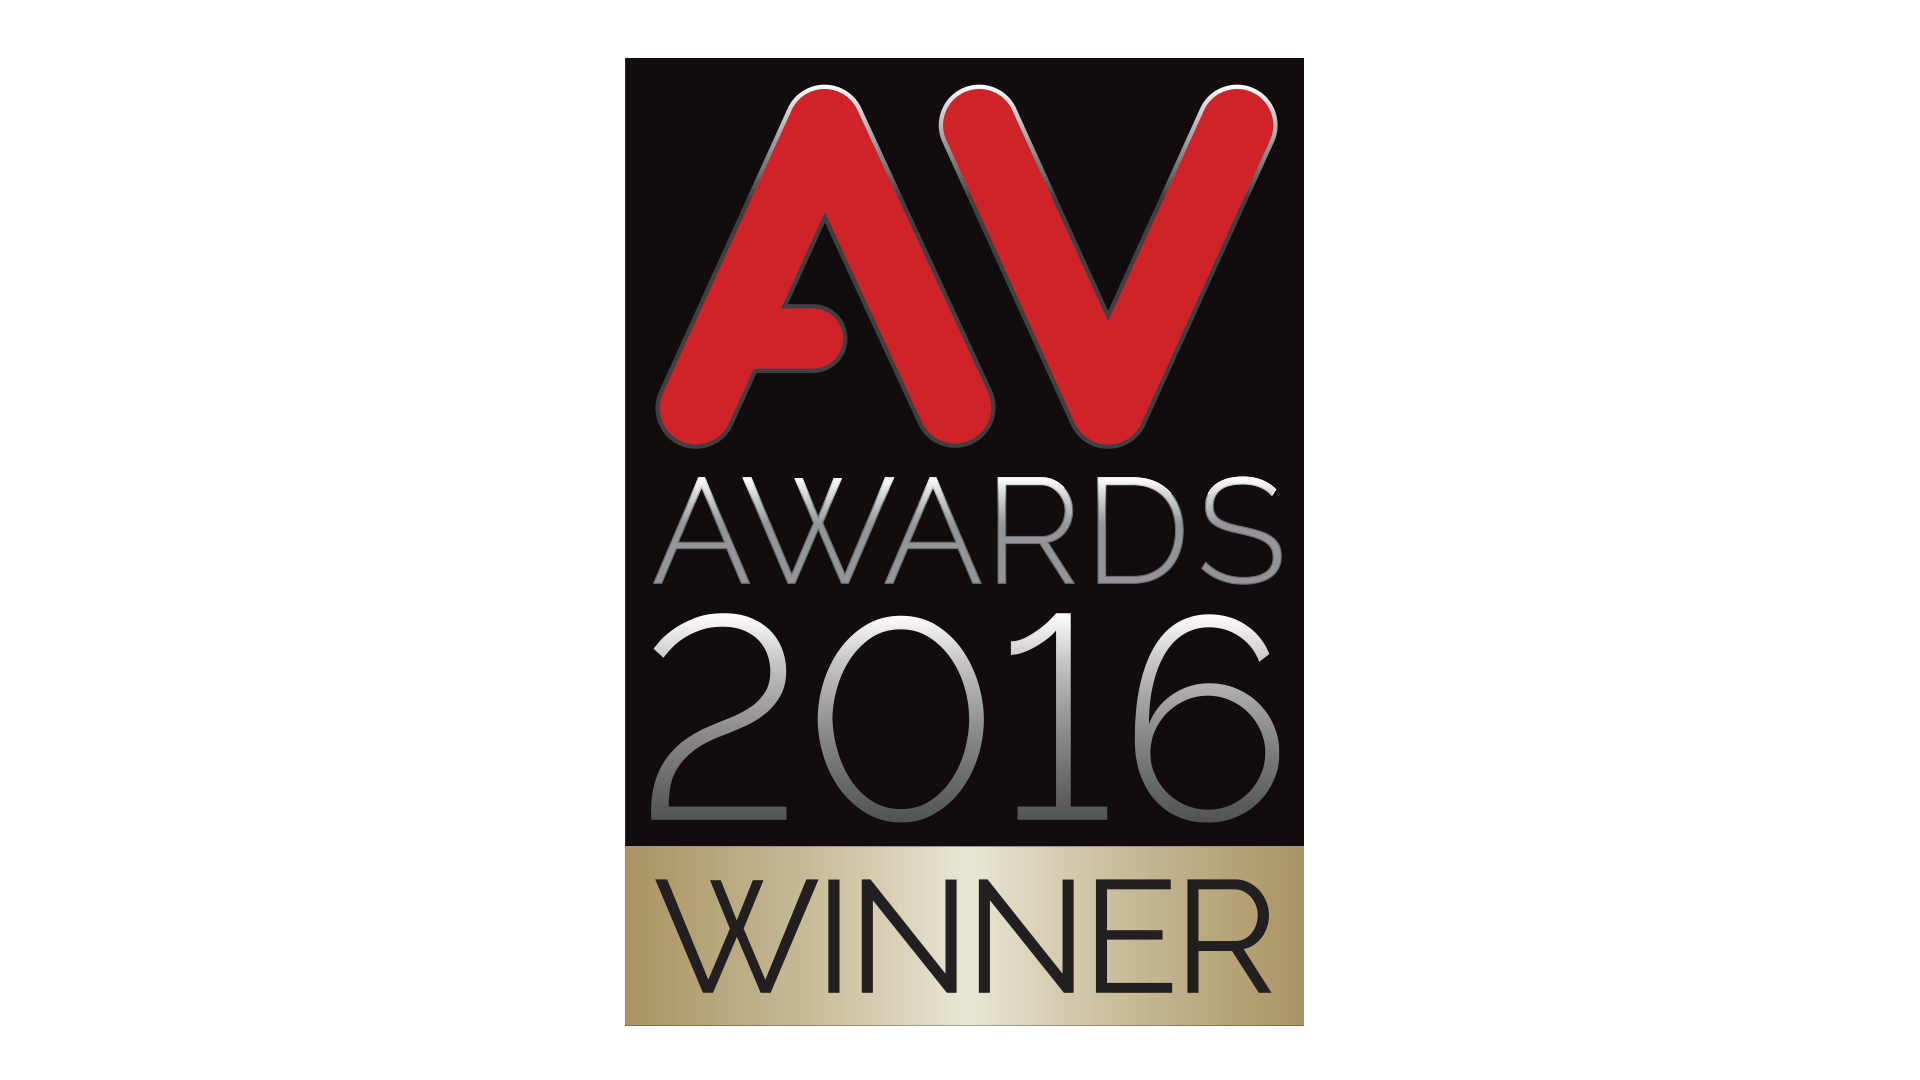 AV Awards 2016 Winner